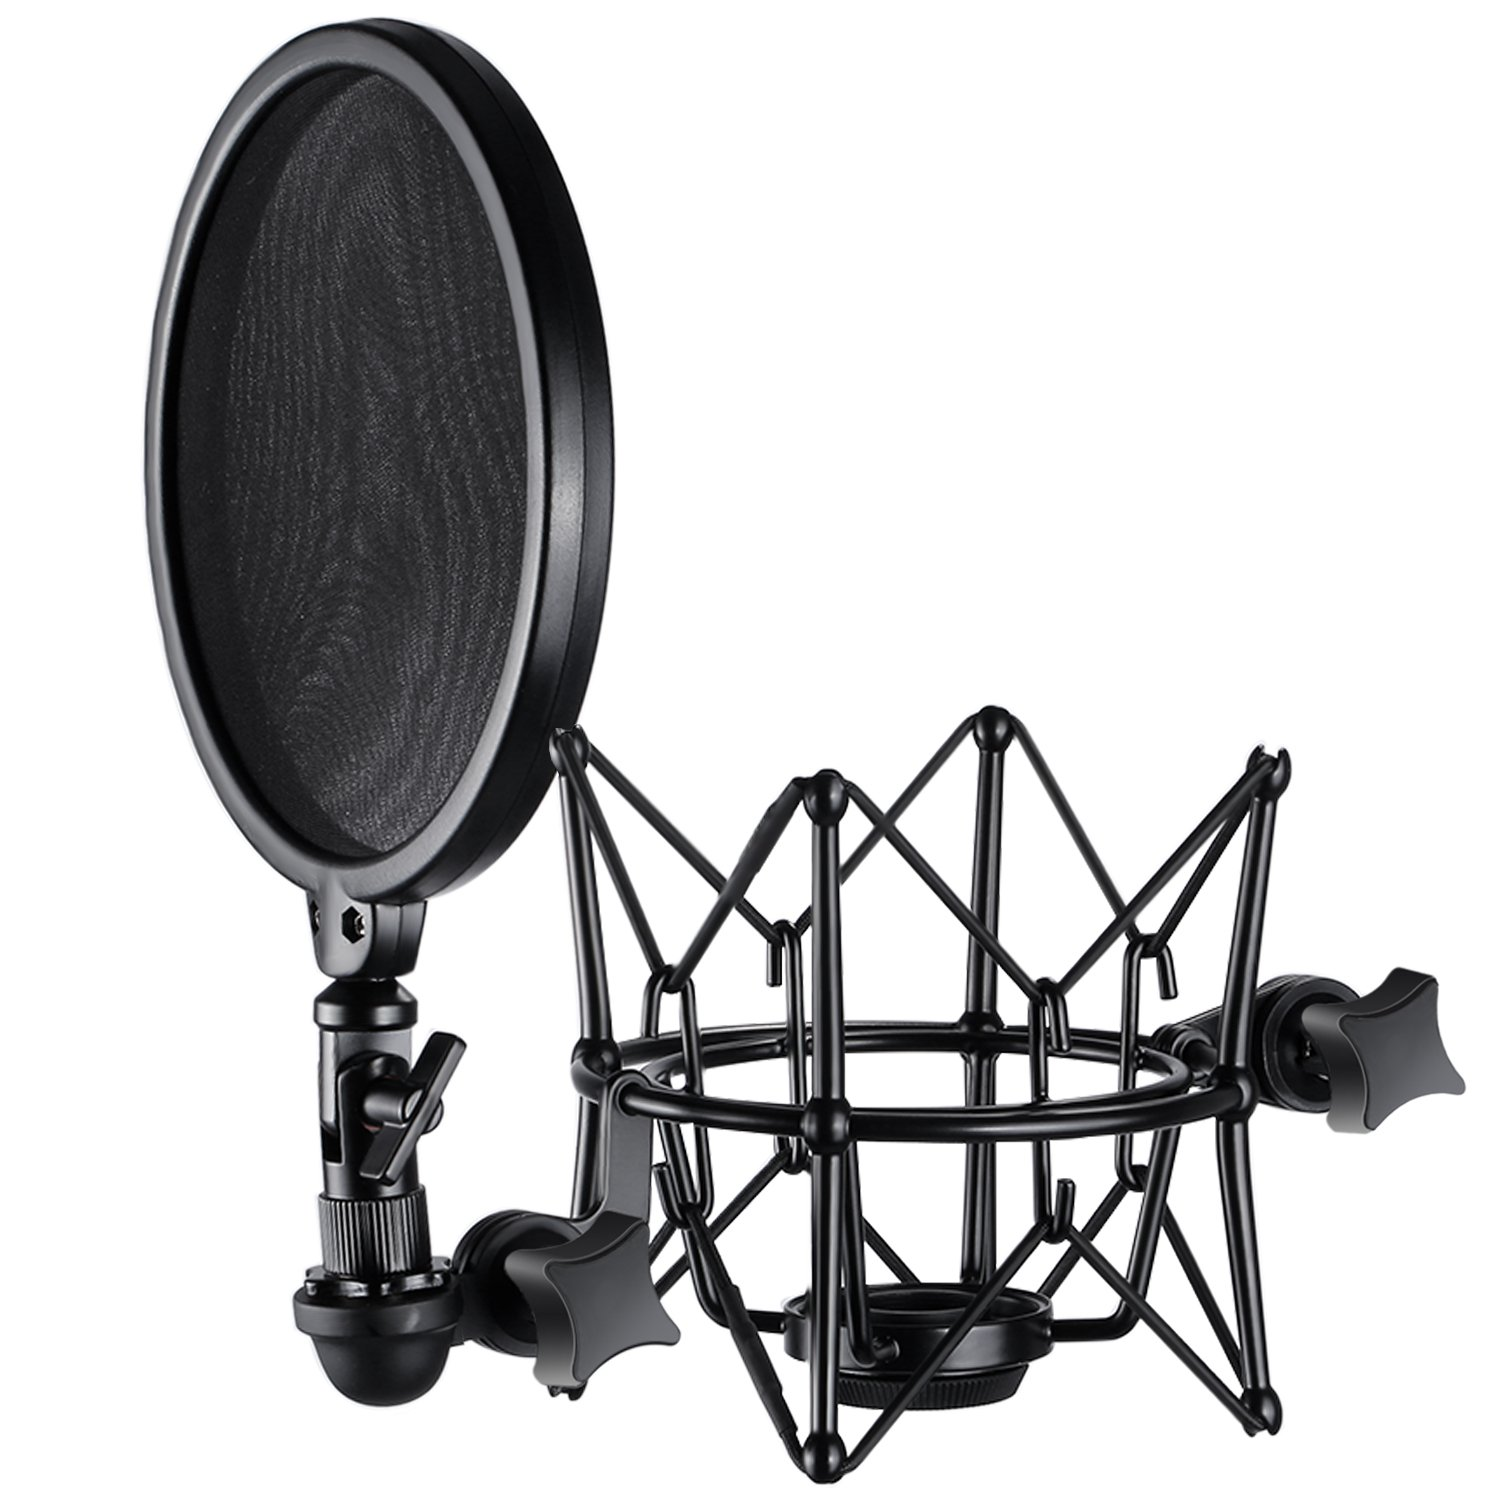 Neewer Metal Microphone Shock Mount and Detachable Pop Filter Windscreen Shield with Dual Mesh for Microphone such as K2 NT2000, Perfect for Broadcasting, Podcasting, Studio Sound Recording(Black)